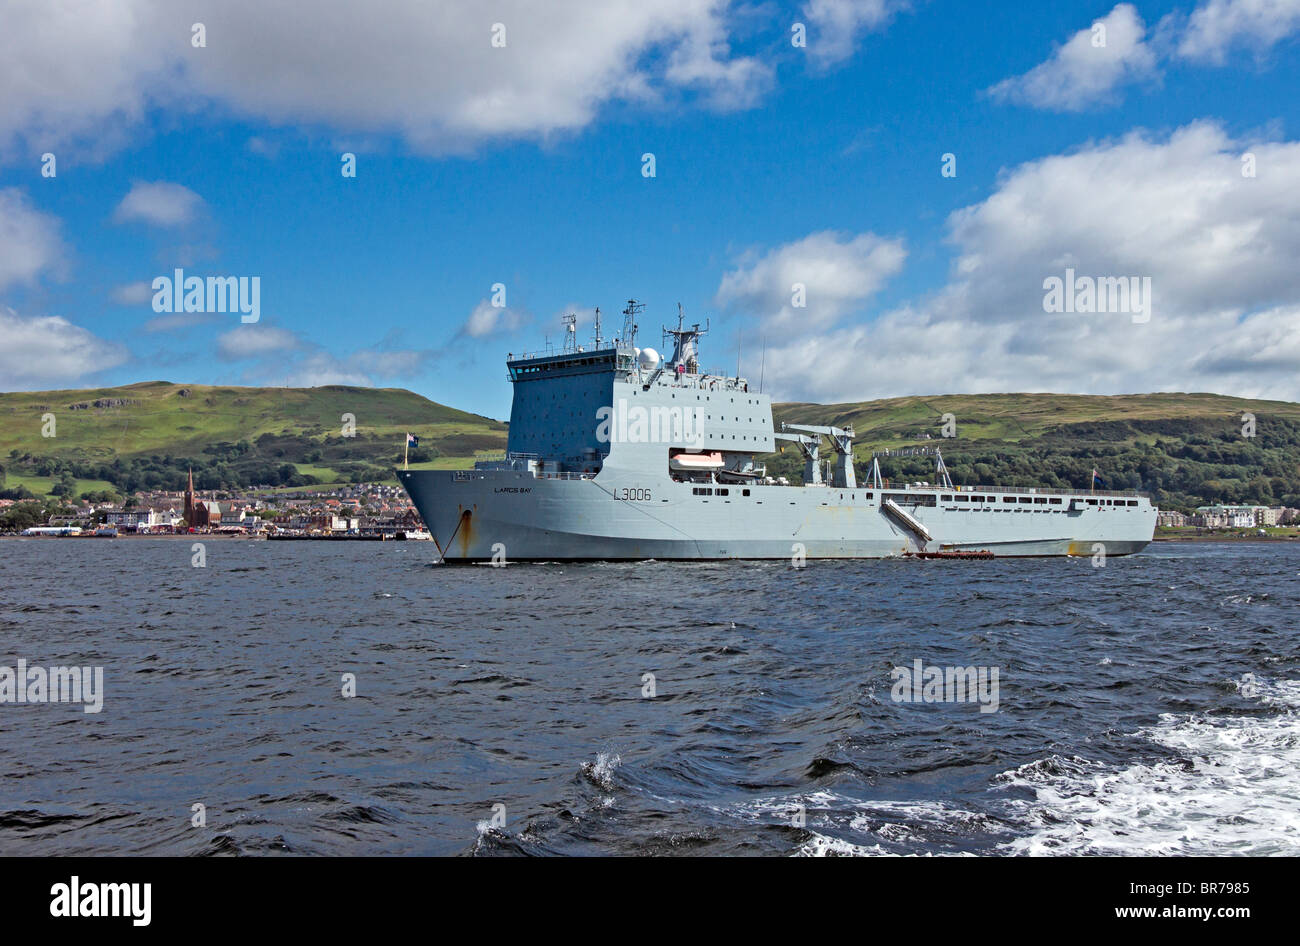 Bay Class Auxiliary Ship Alternative Landing Ship Logistic (ALSL) L3006 Largs Bay anchored appropriately at Largs - Stock Image